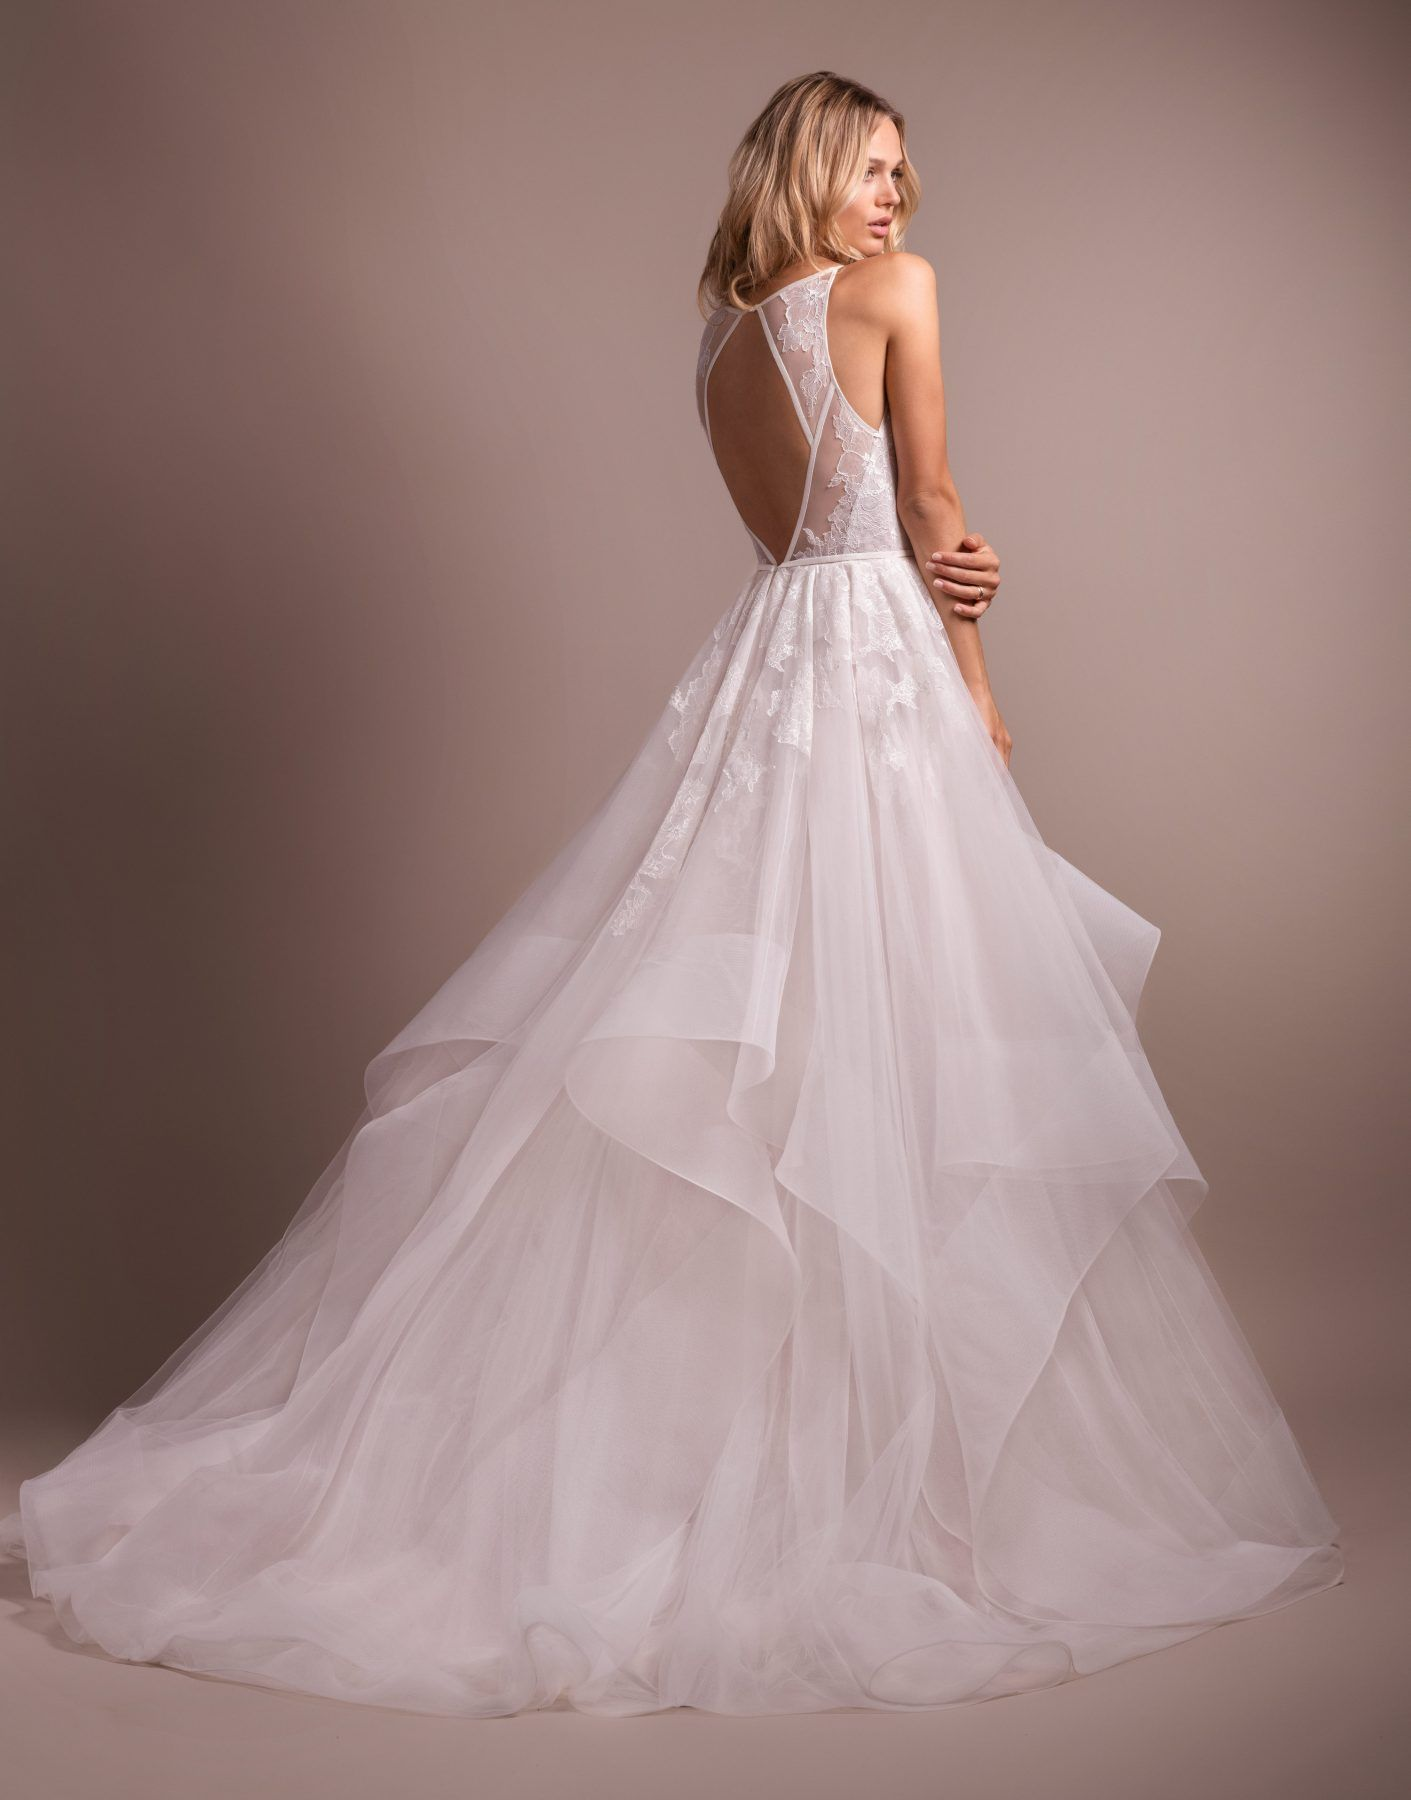 Lace Bodice Tulle Skirt Ball Gown Wedding Dress Classic Wedding